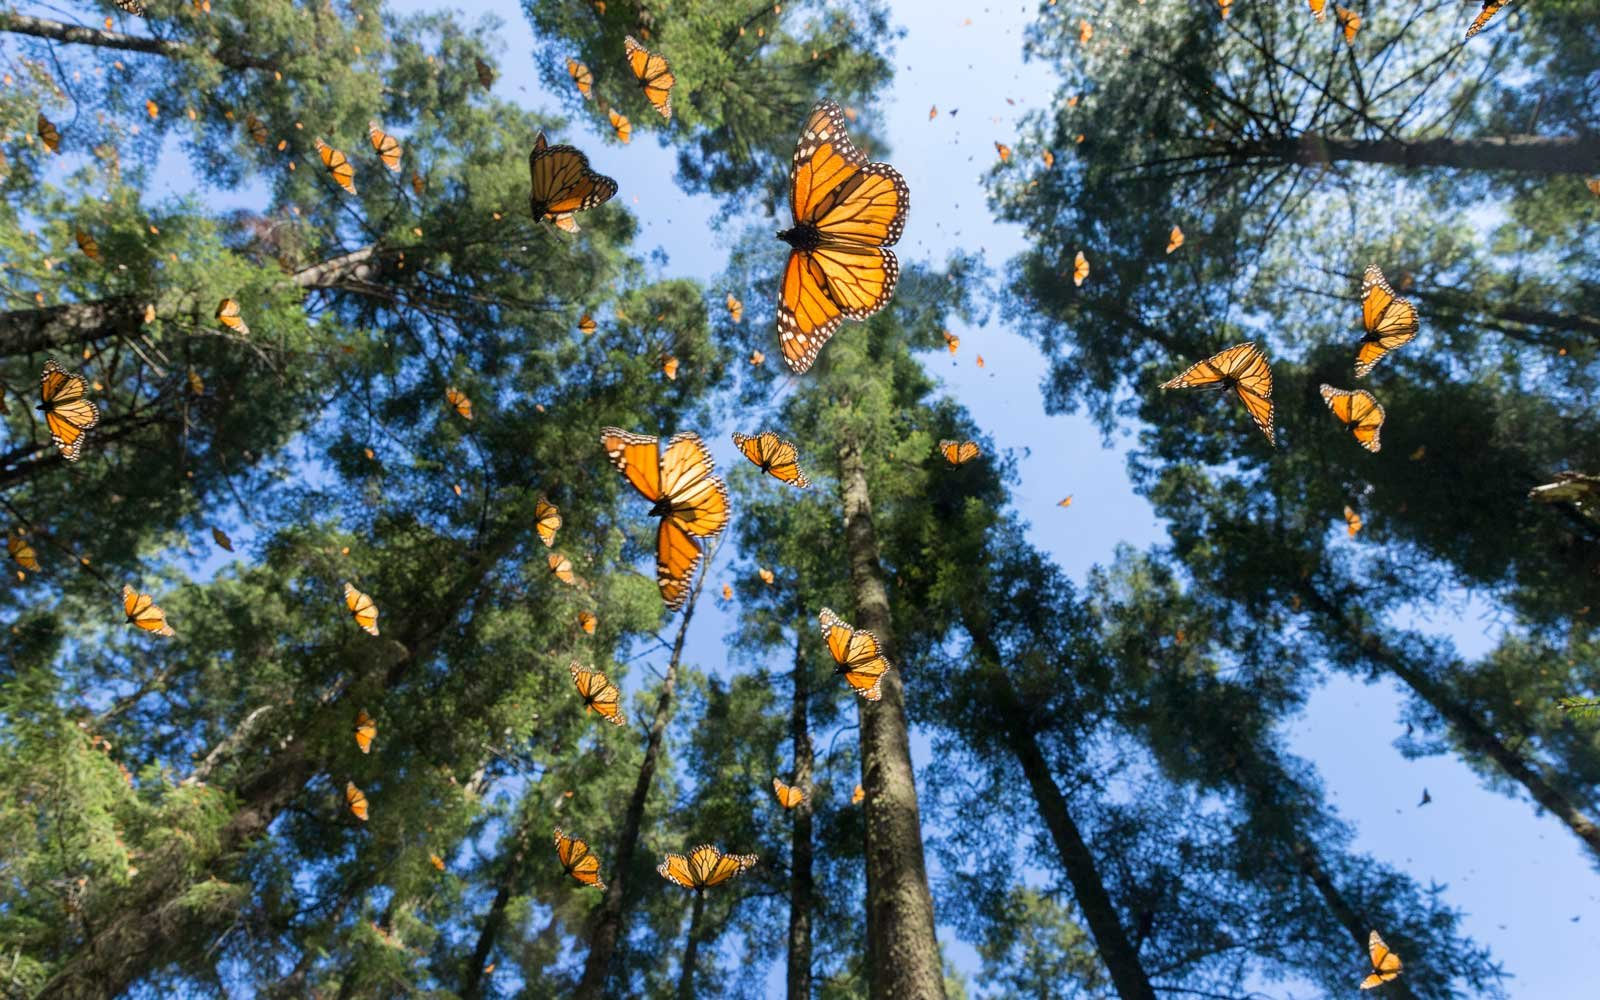 Monach butterflies in flight at the Biosphere Reserve in Mexico